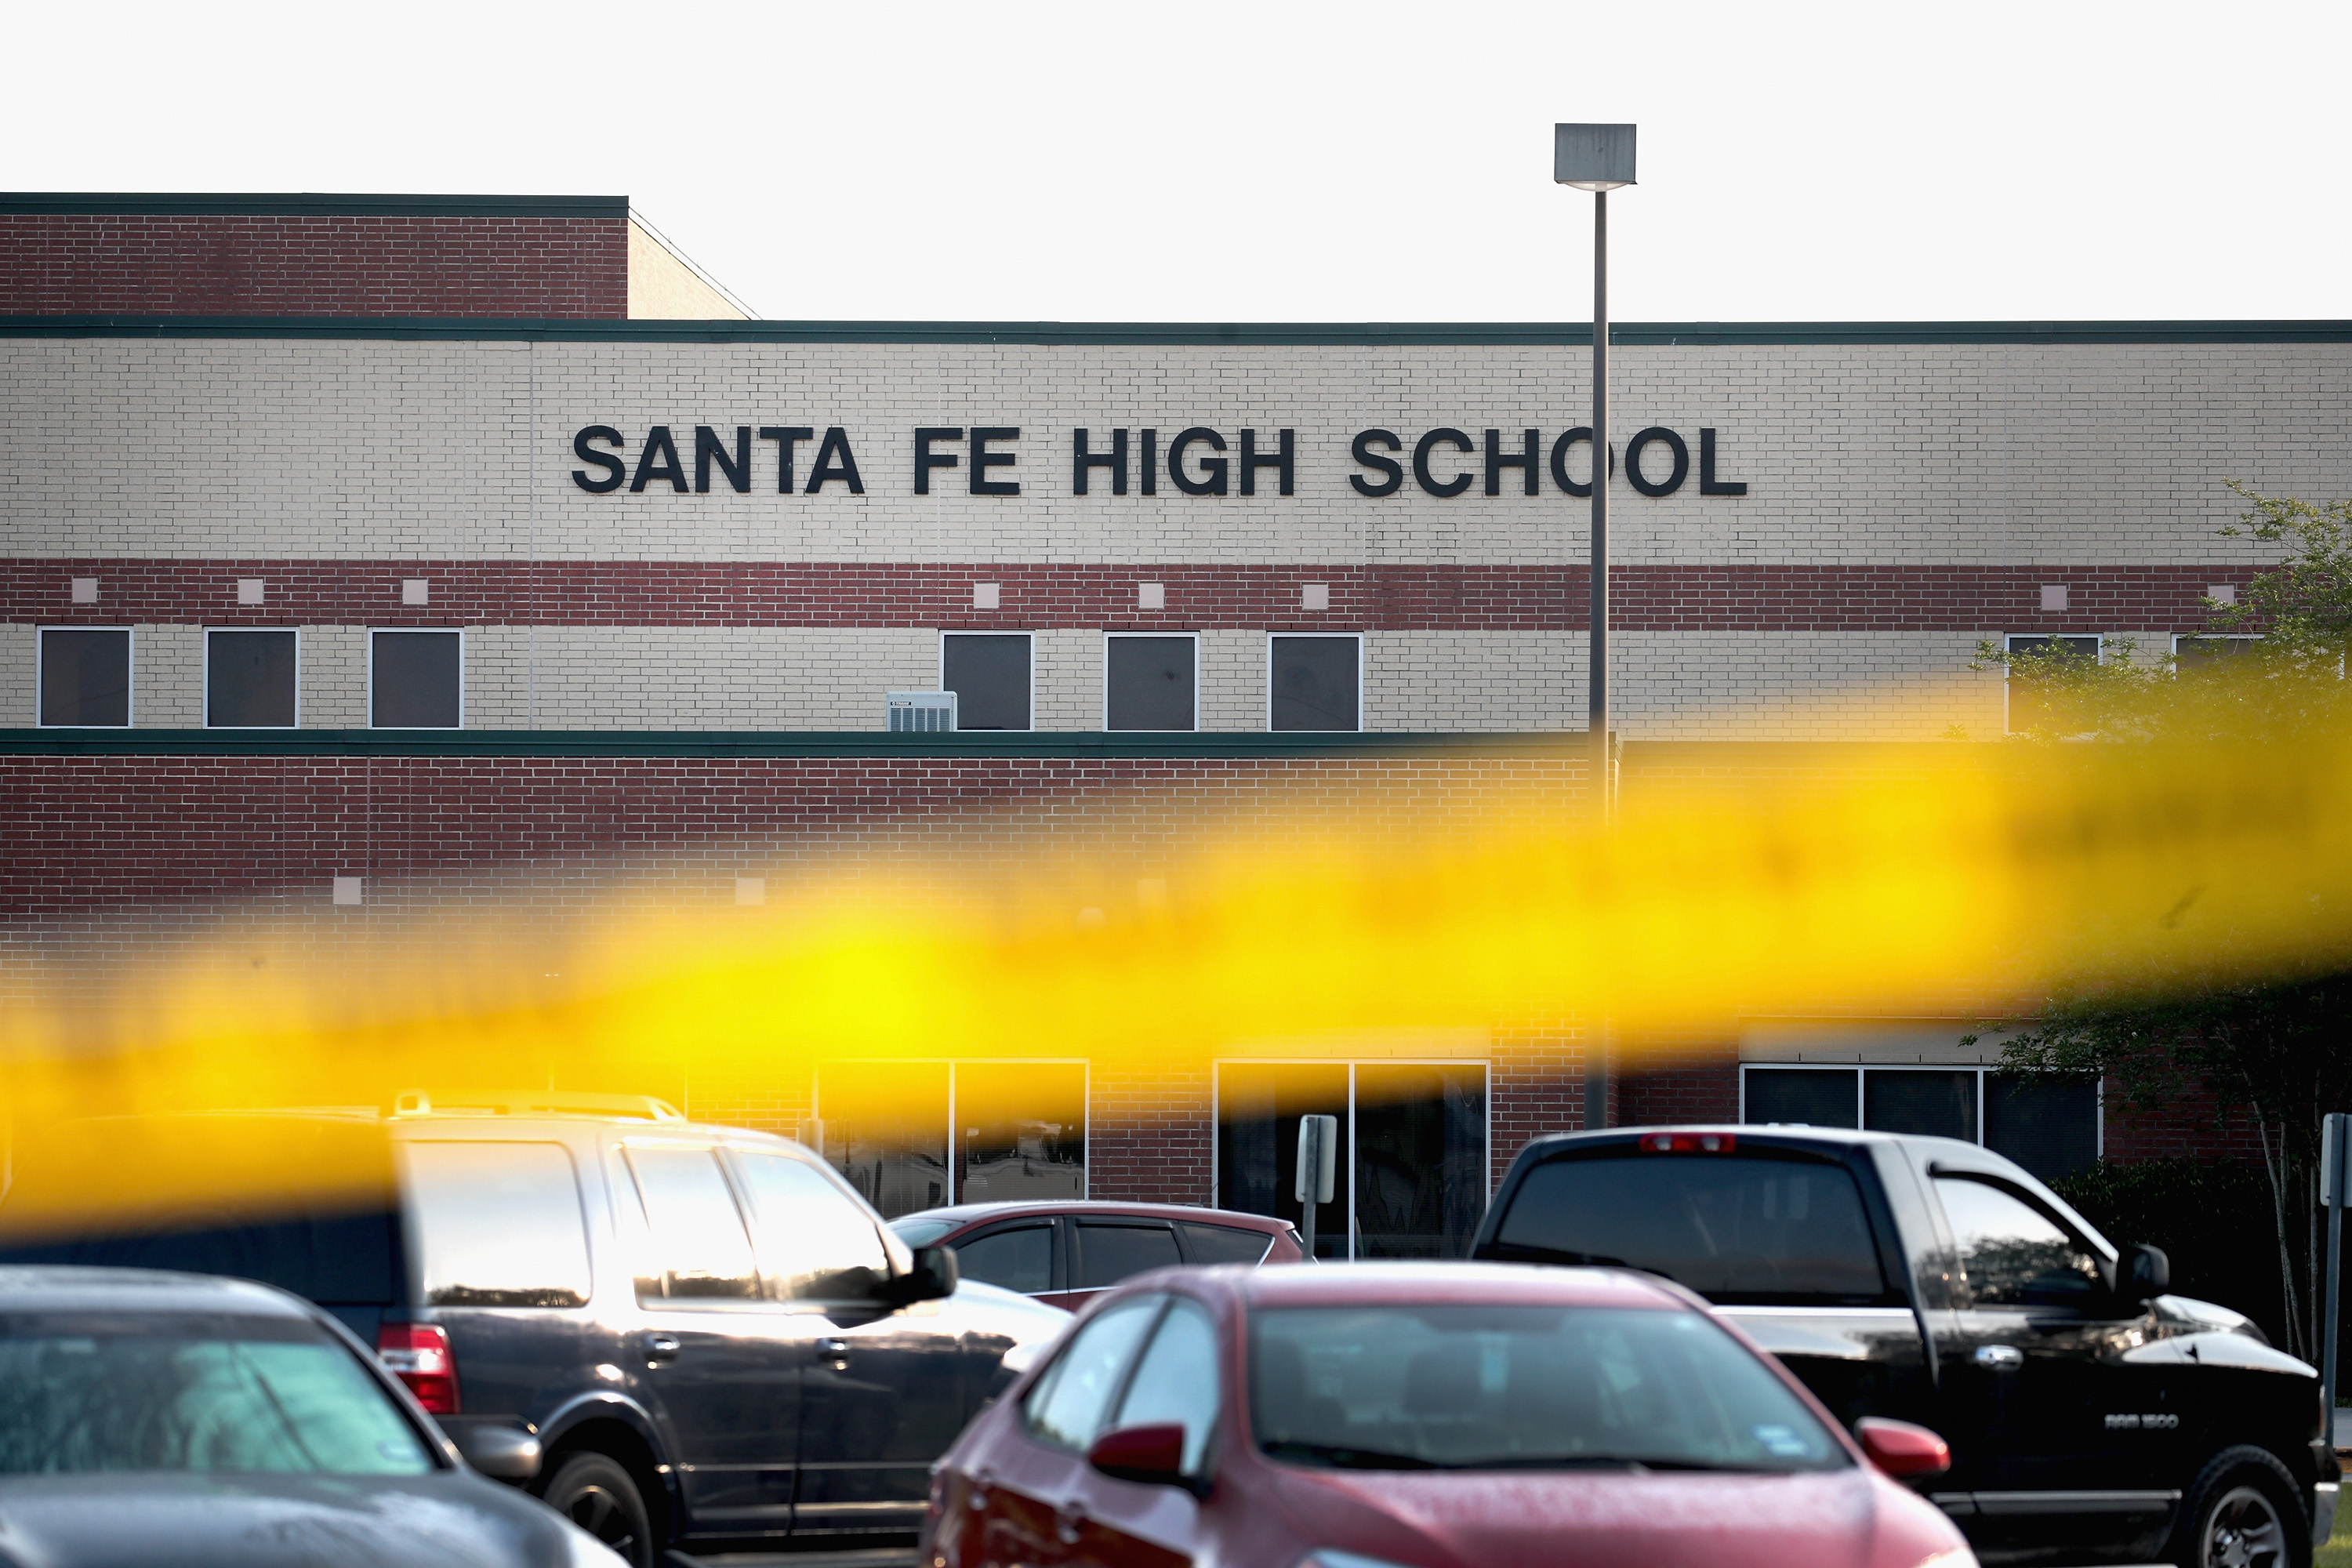 Deadly Shooting At Santa Fe High School In Texas Leaves 10 Dead